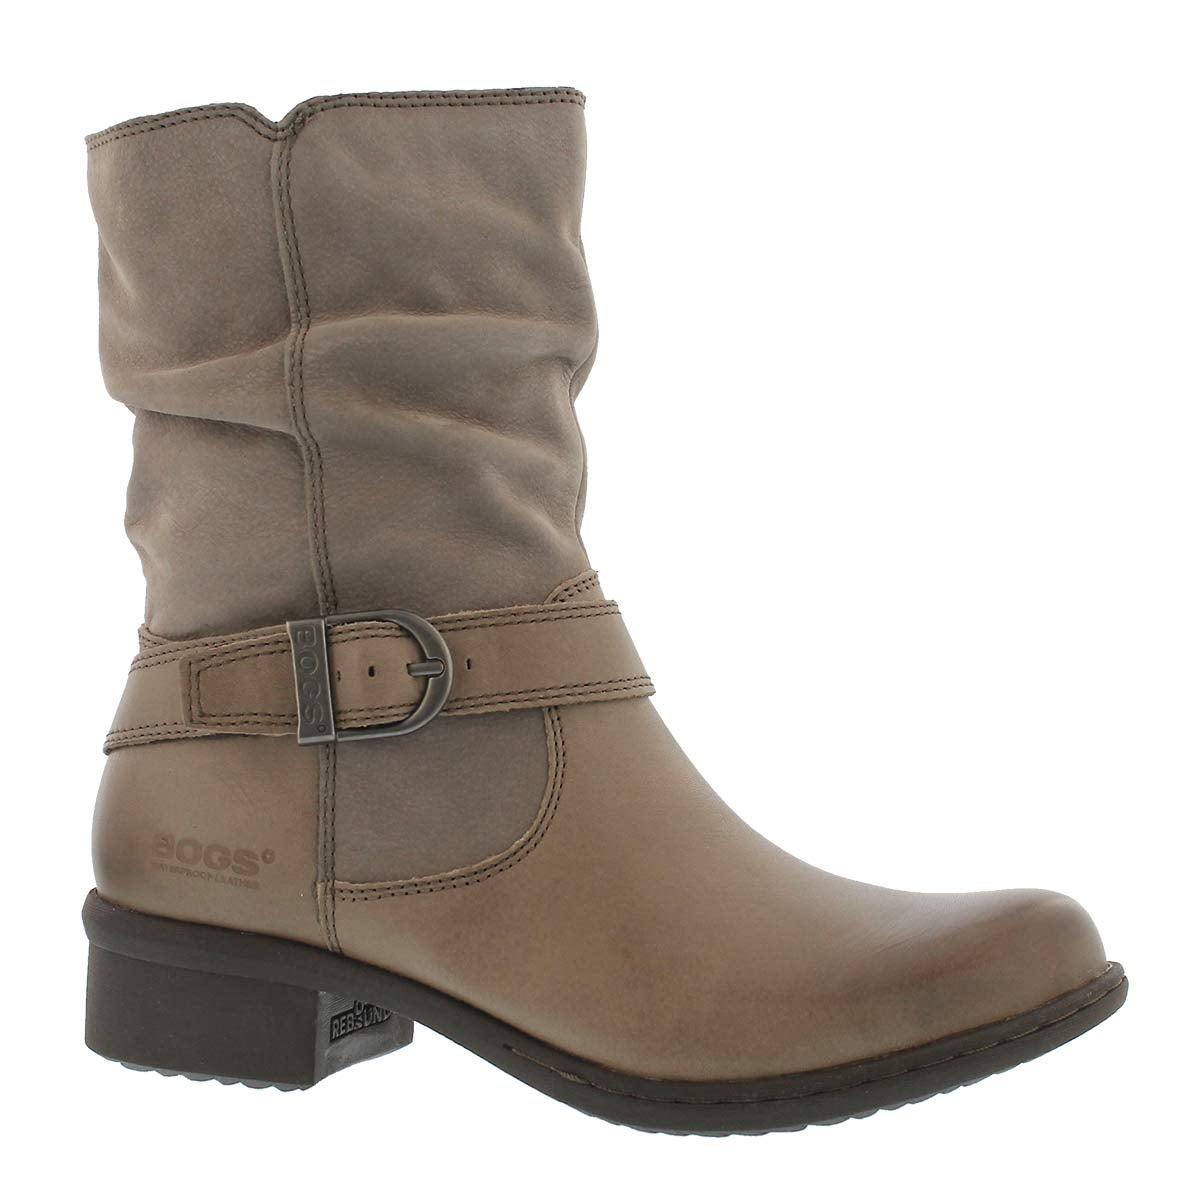 Lds Carly Mid taupe wtpf ankle boot